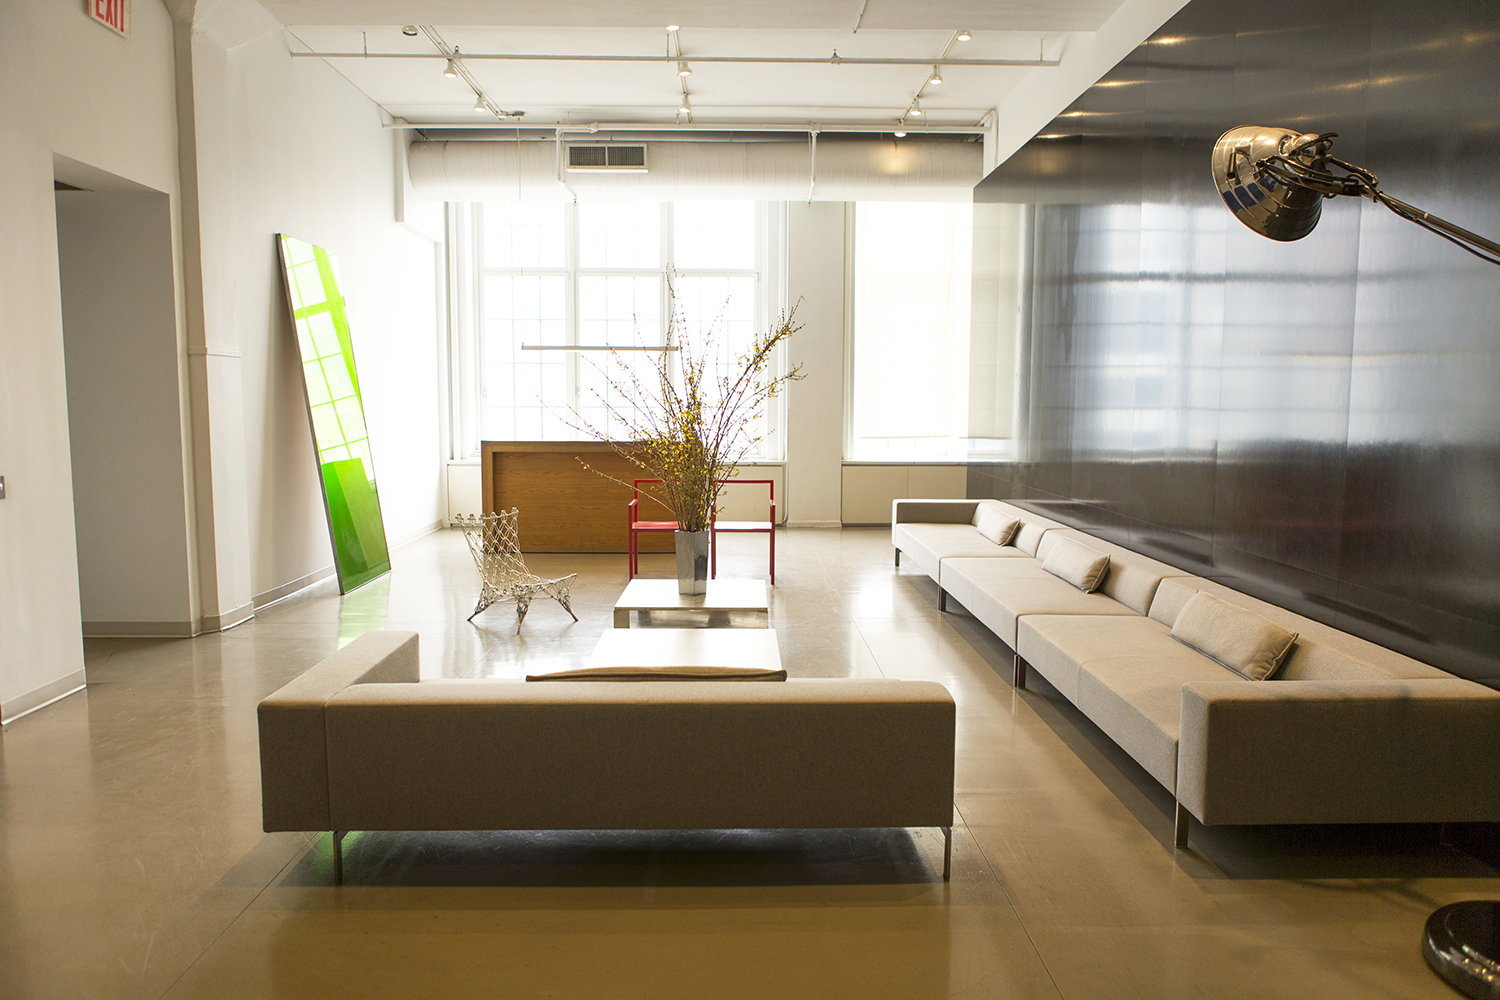 Inside View The Offices of Laird+Partners with Trey Laird & The Clios